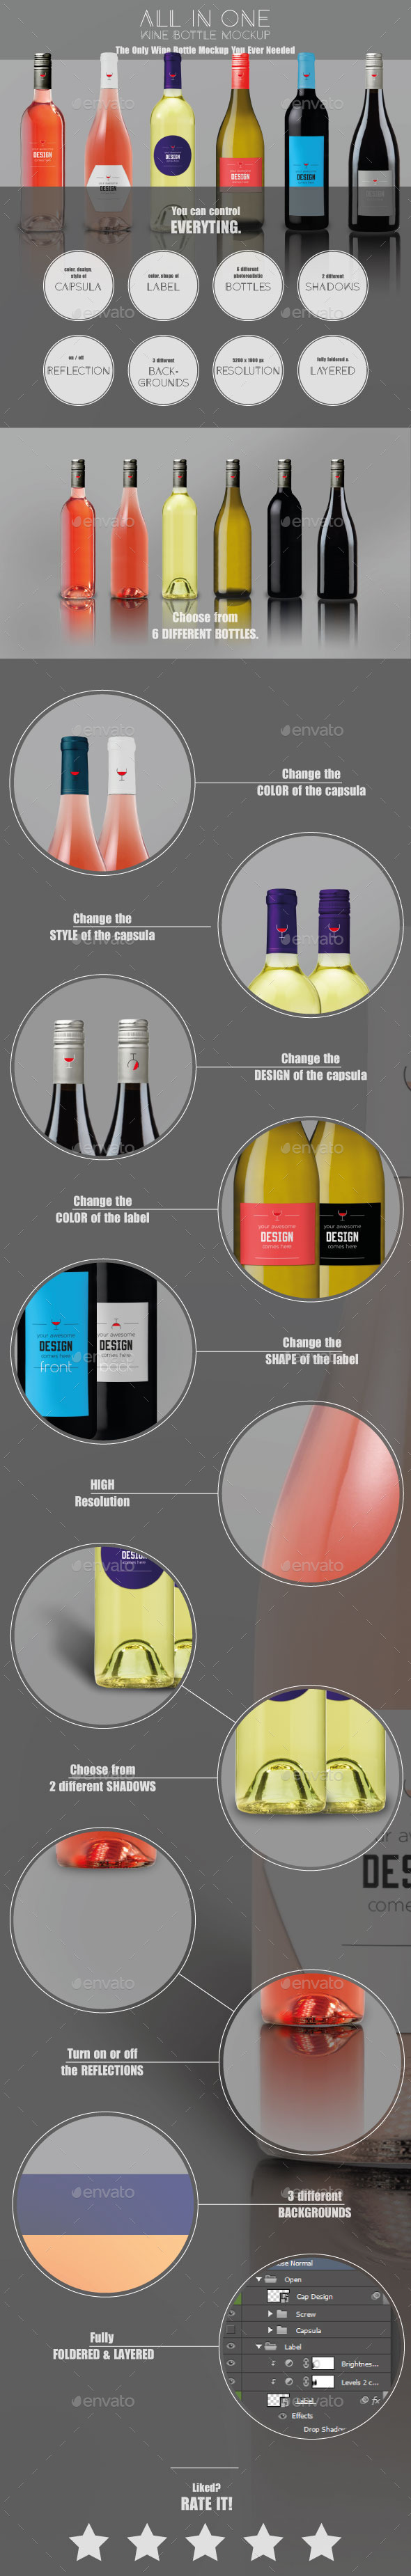 GraphicRiver All-In-One Wine Bottle MockUp 11744652